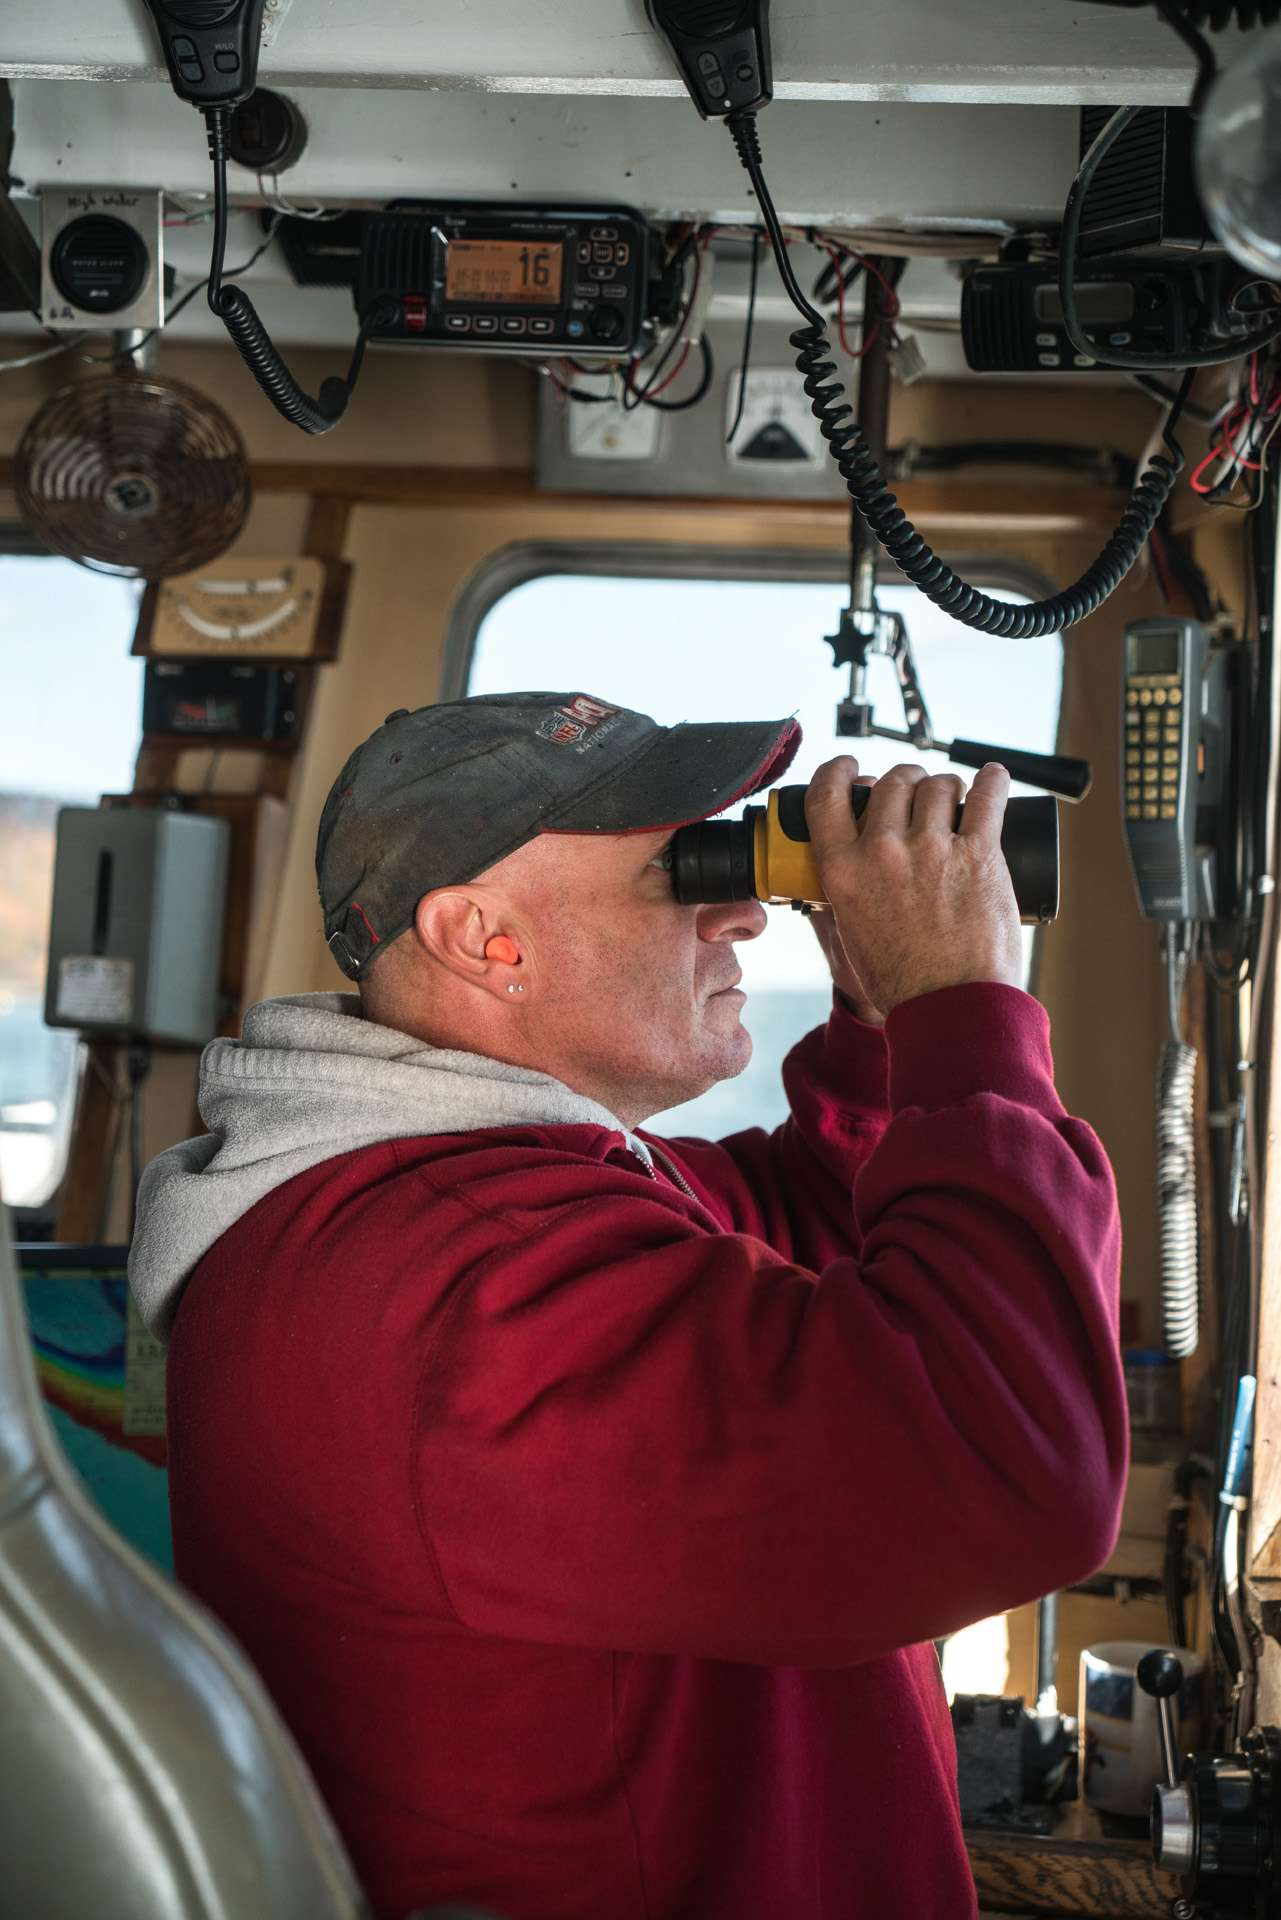 boat captain wearing red jacket looking through binoculars by Bruno Florin for Ricardo Magazine in Bay of Fundy